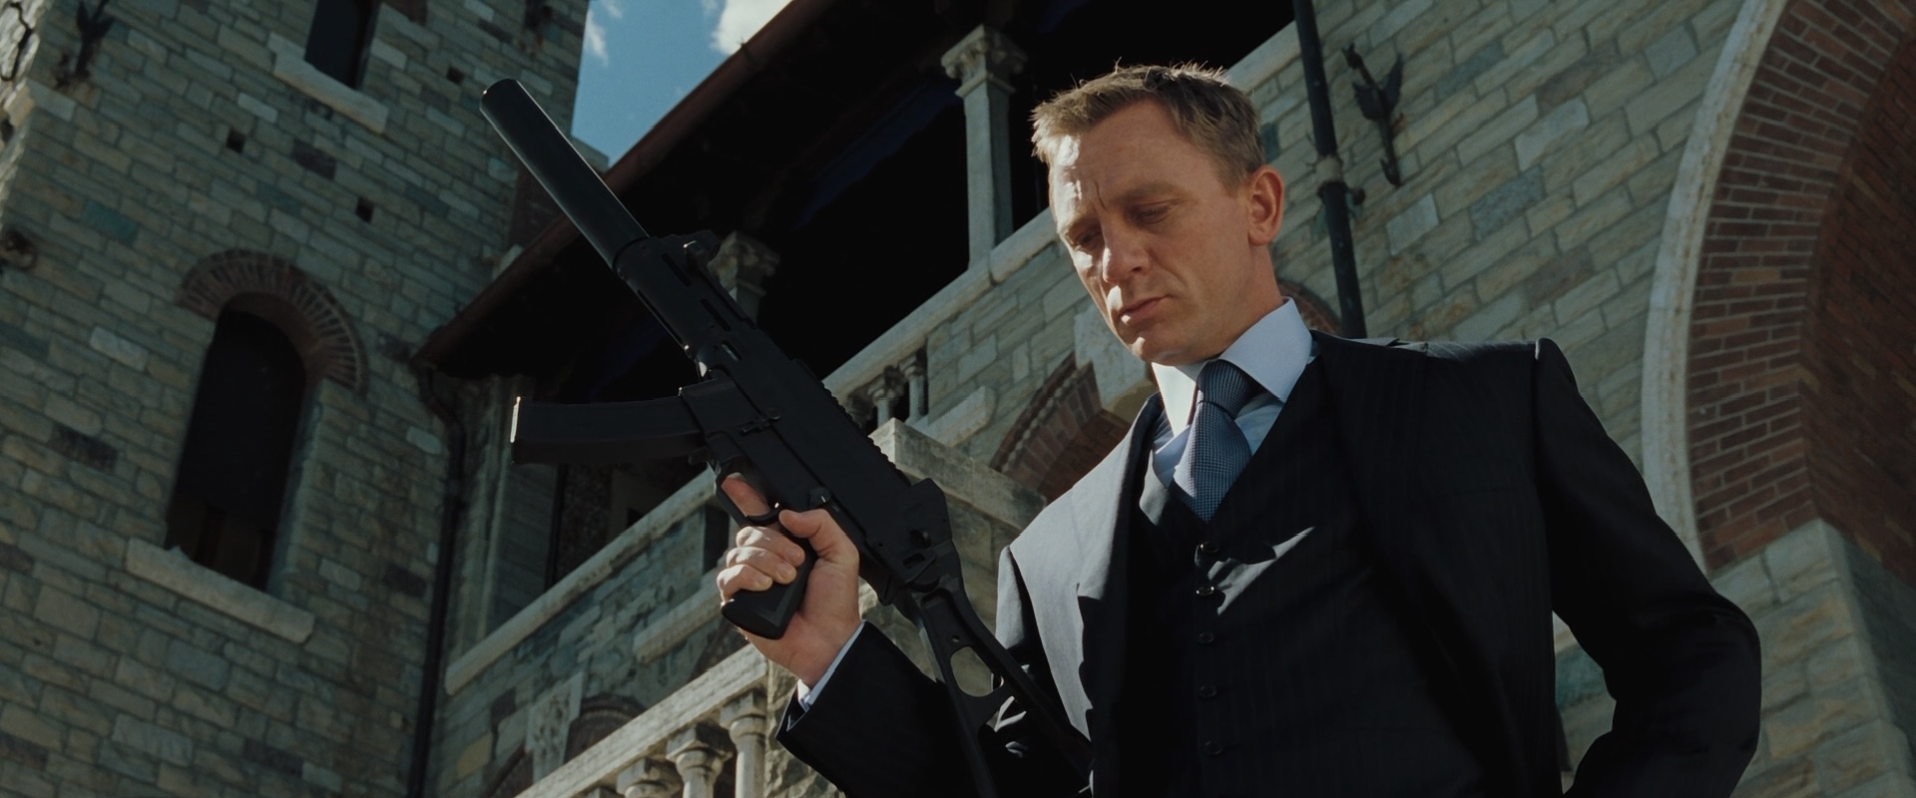 How james bond is relevant in